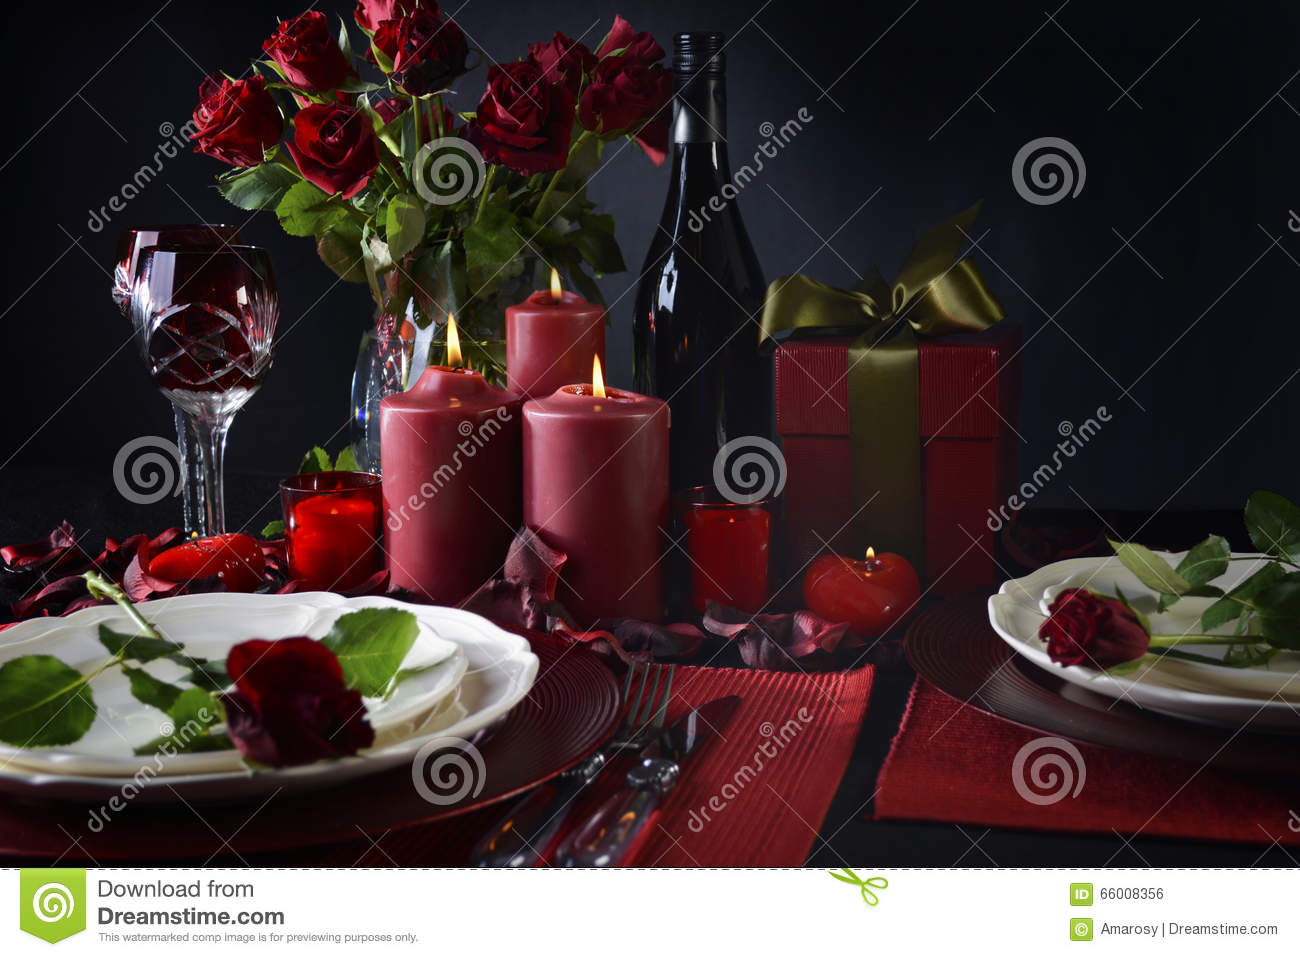 Romantic Valentine Table Setting. Dining passion. & Romantic Valentine Table Setting Stock Photo - Image of dining ...